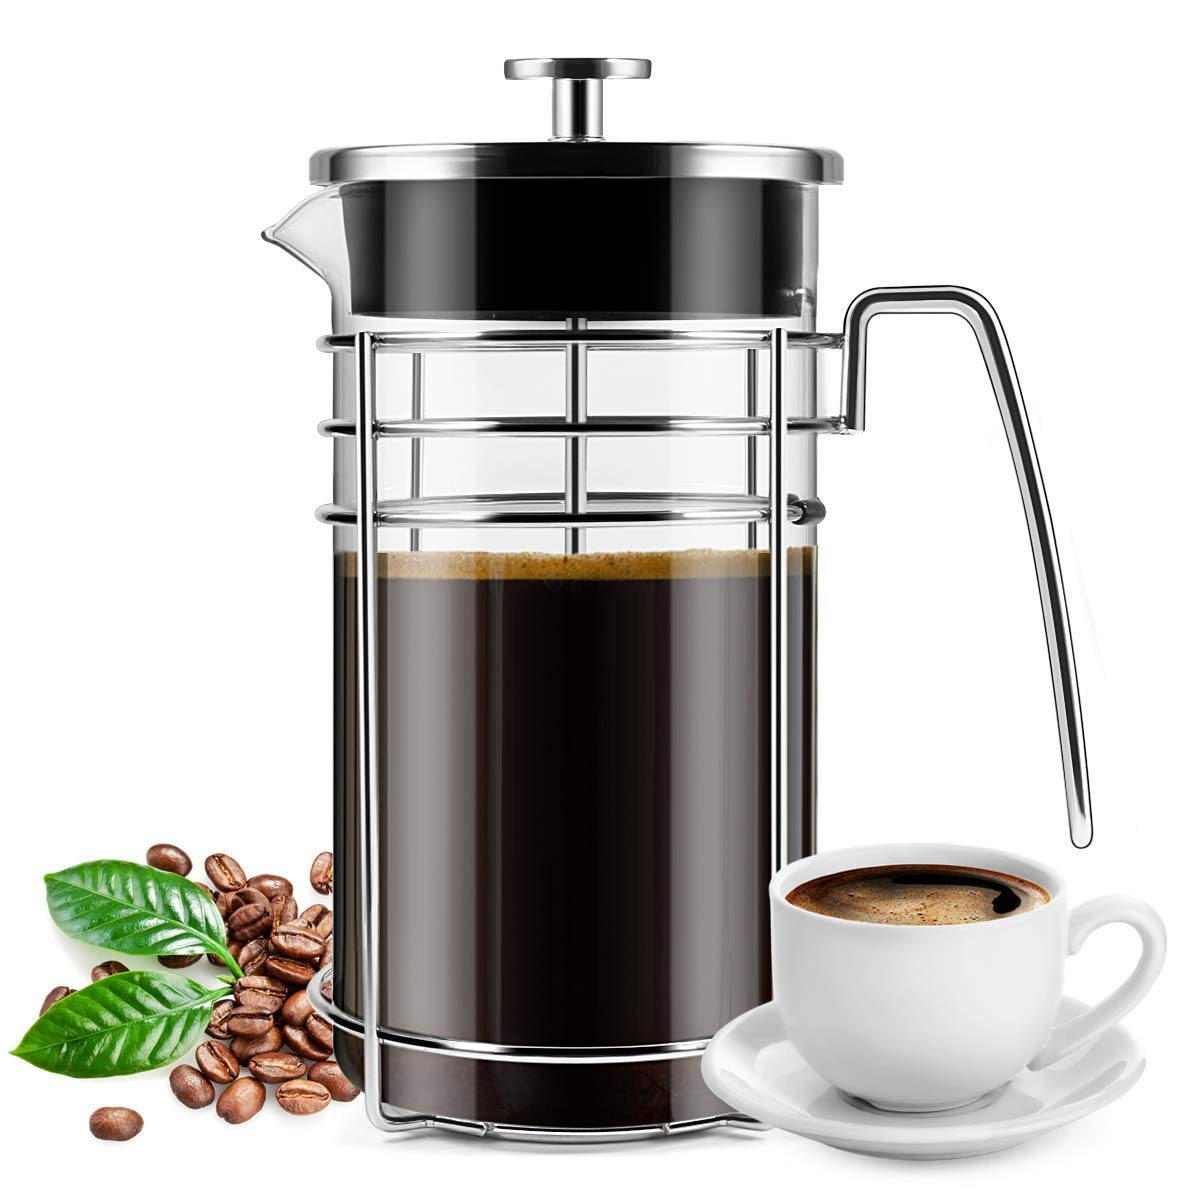 French Press Coffee Maker, (8 Cups/ 34 oz) Durable Easy Clean Coffee Pot Heat Resistant Borosilicate Glass - 100% BPA Free by PentaBeauty